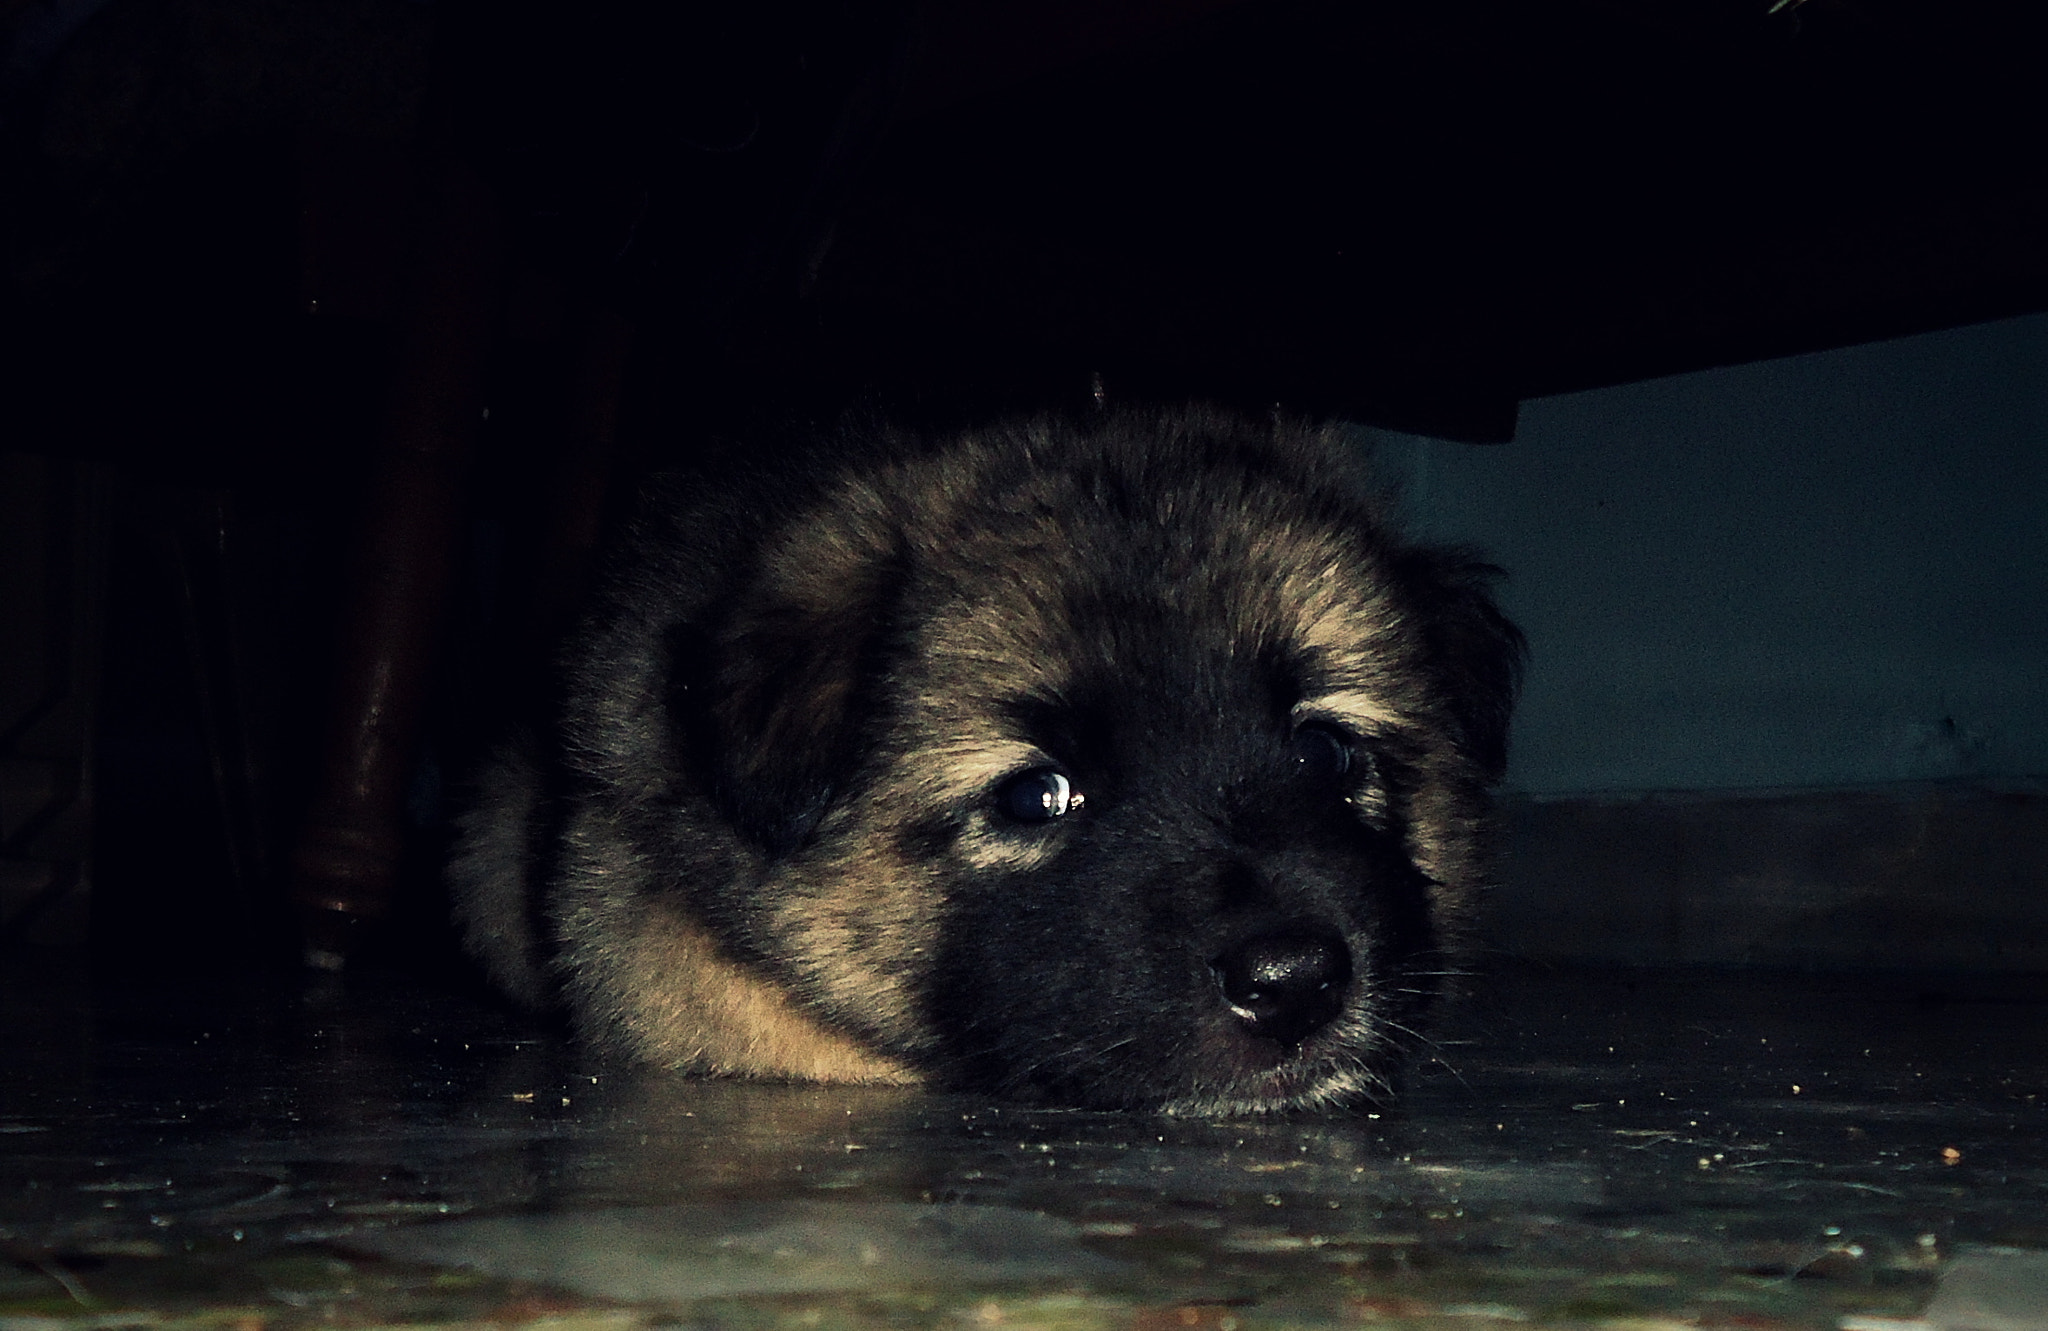 Photograph Pup O_x by Pix tEj on 500px